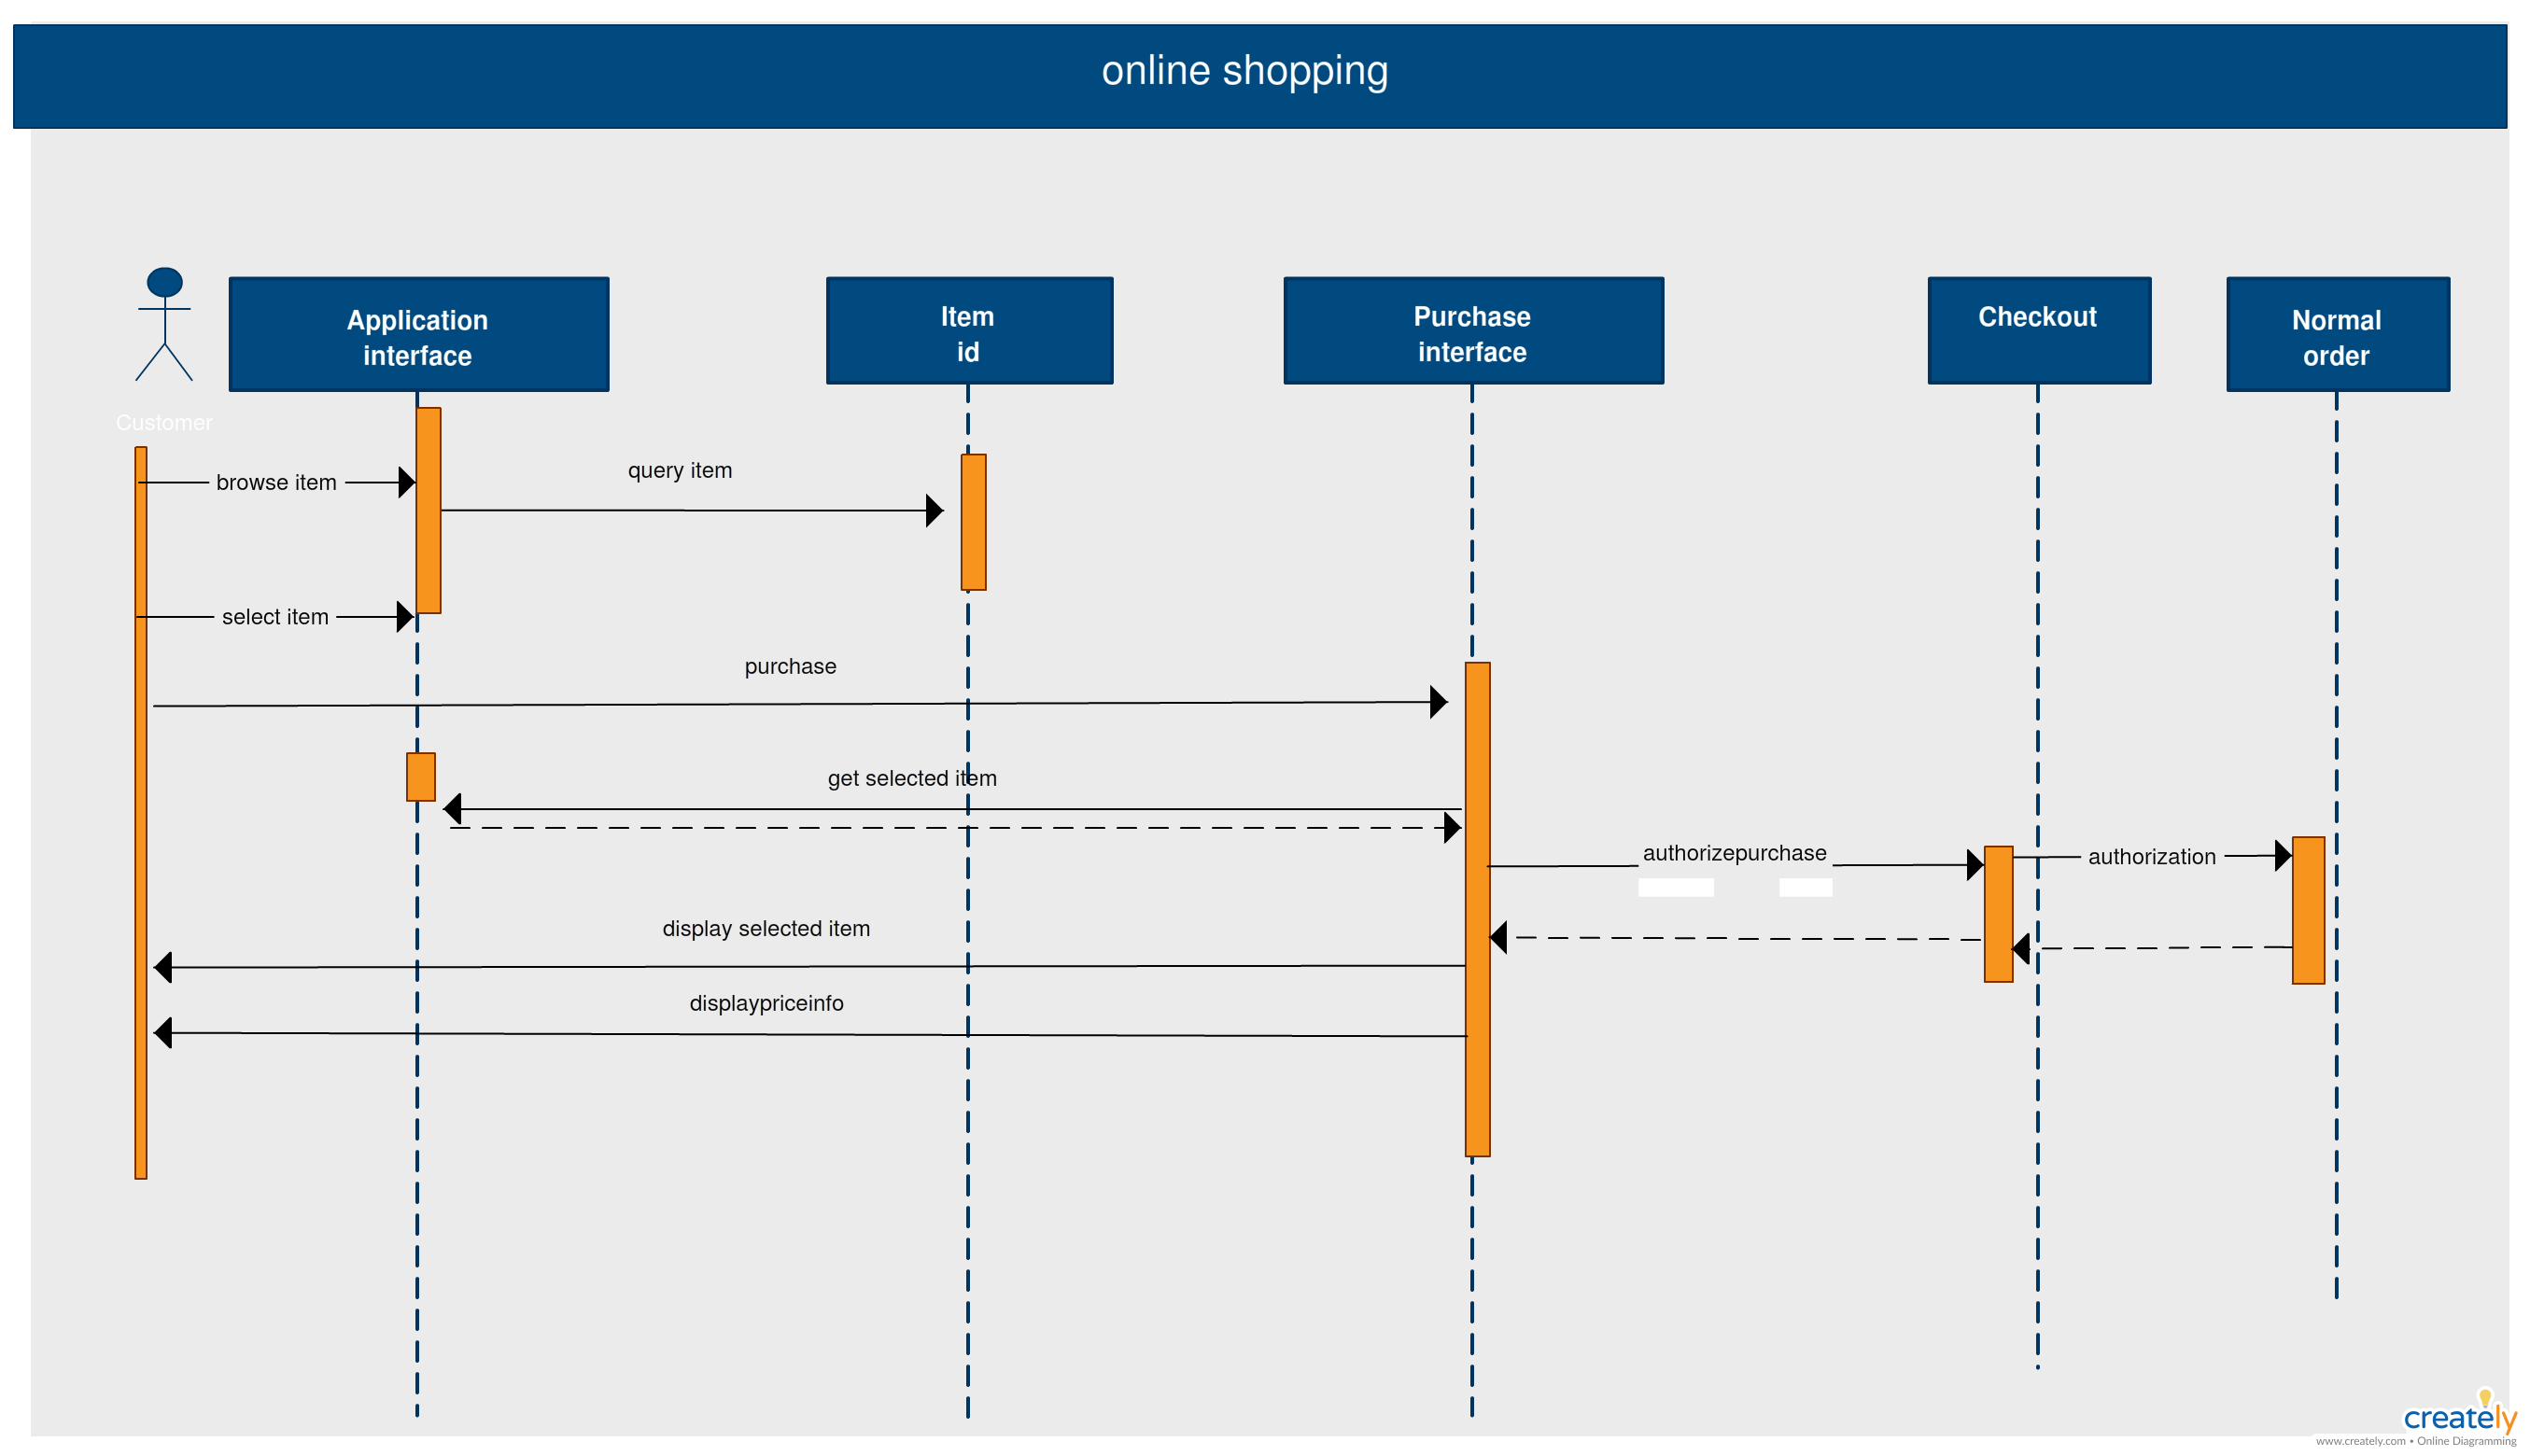 sequence diagram template of online shopping system click on the image to use this as [ 2710 x 1560 Pixel ]